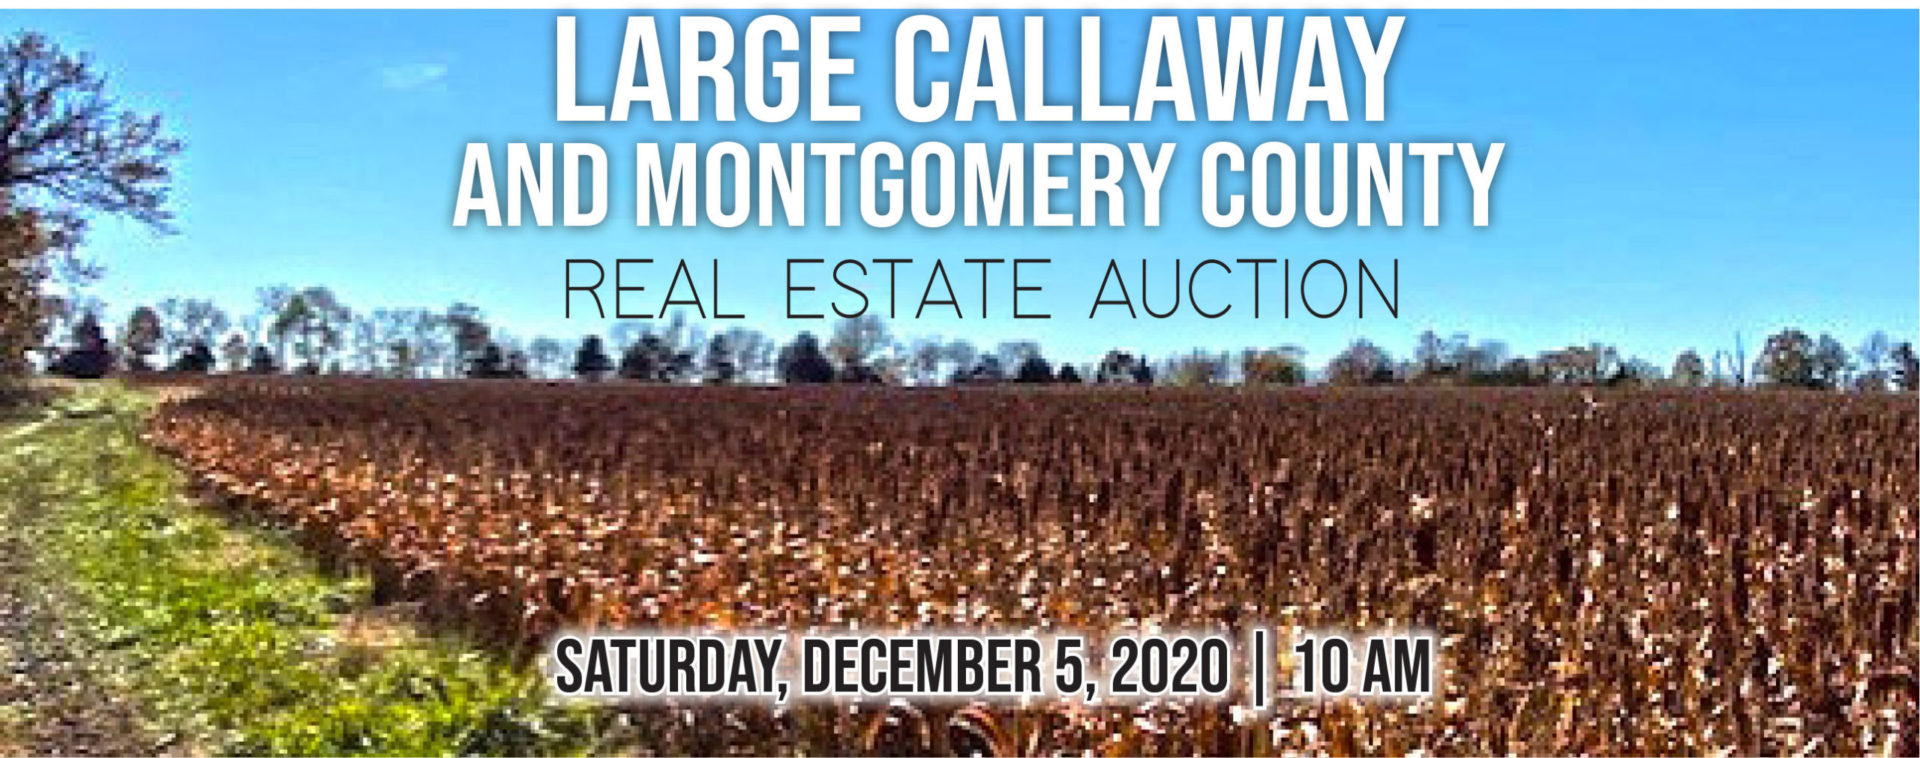 large-real-estate-auction-in-northeast-missouri